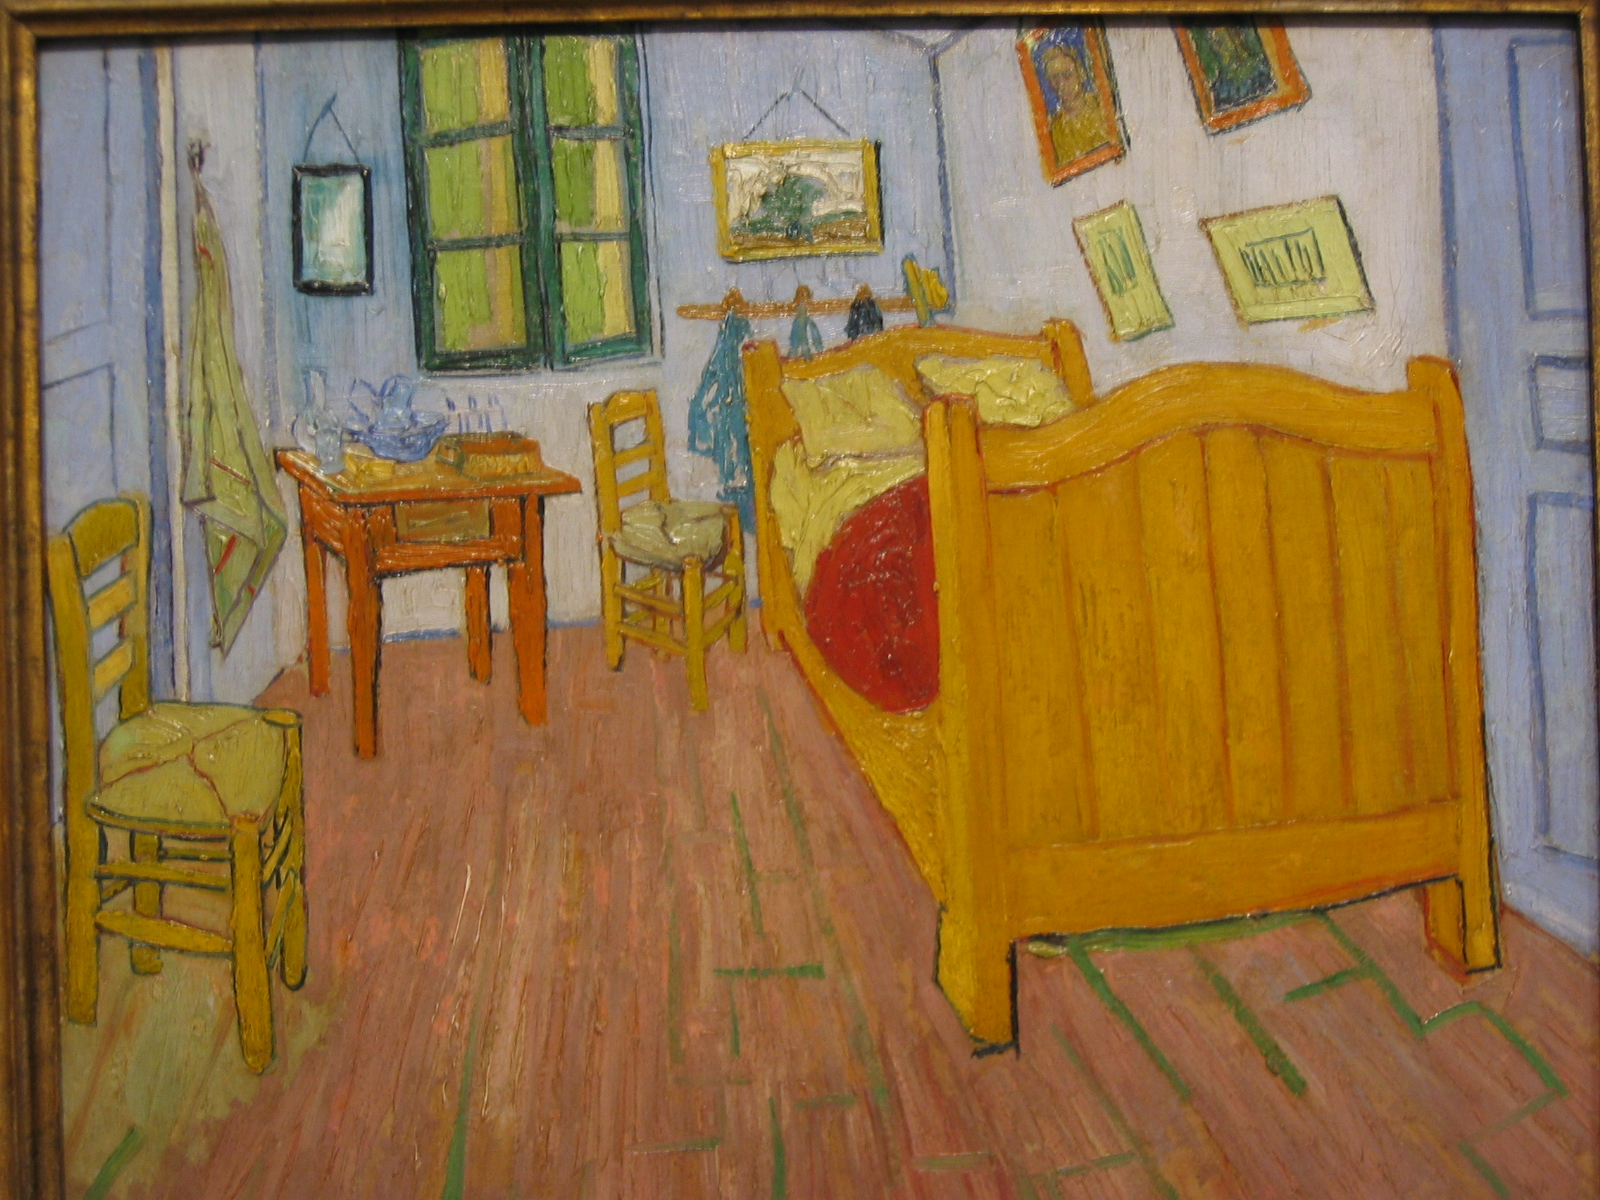 File WLANL Minke Wagenaar Vincent Van Gogh 1888 The Bedroom 1 Jpg